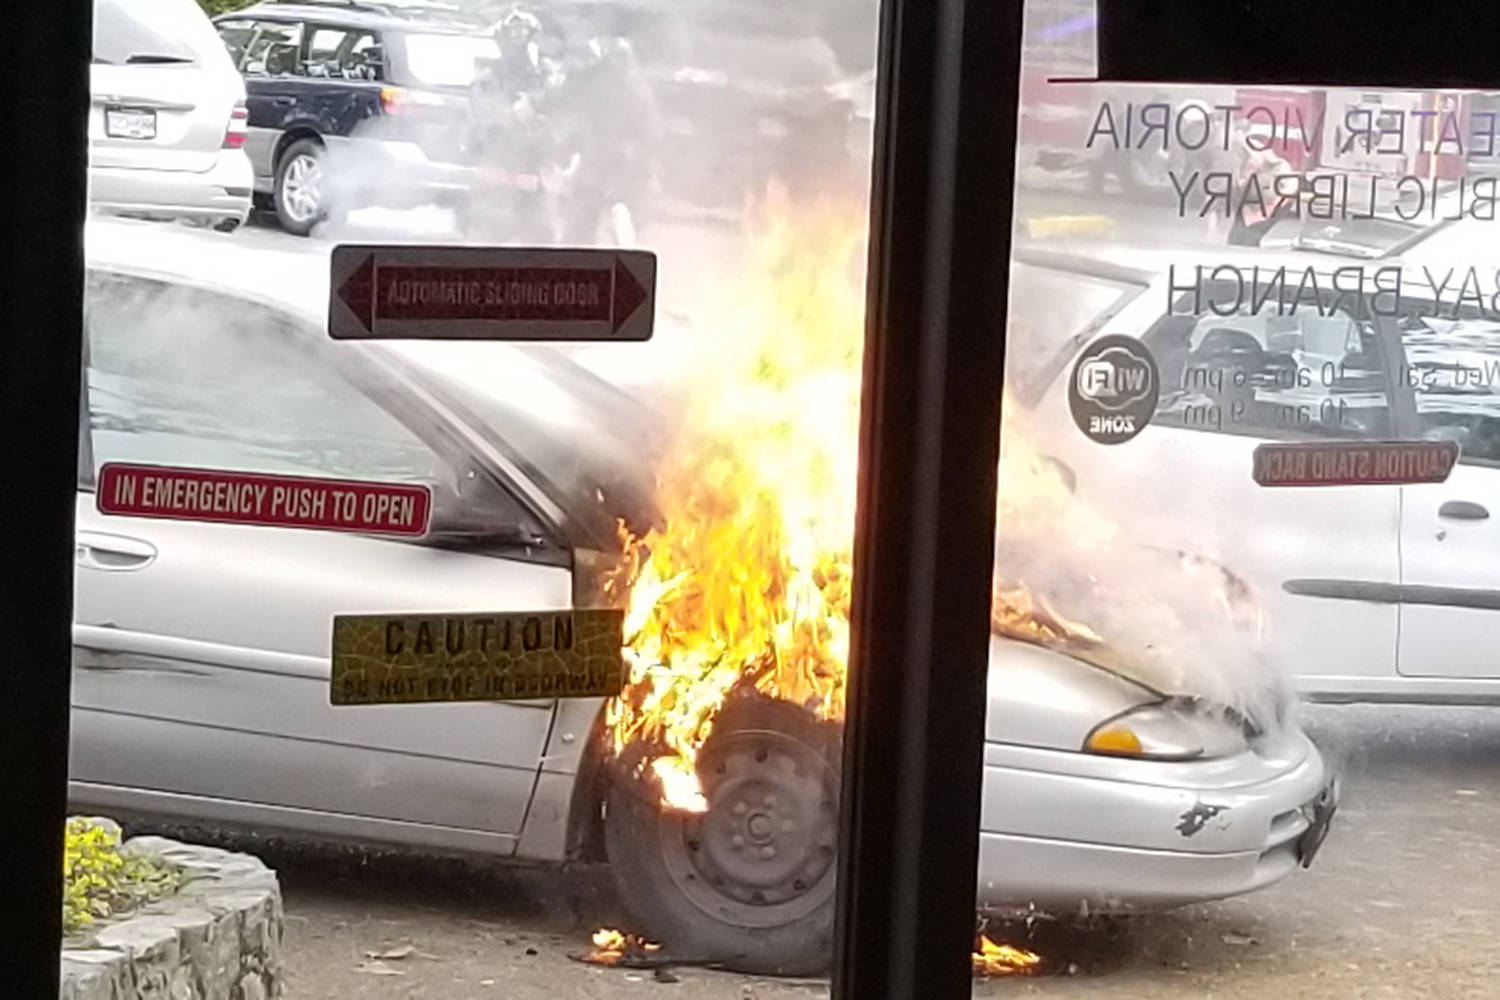 A couple pulled in briefly to the Oak Bay Library to drop off books Wednesday morning when their car caught on fire. The engine, dash, panels, windshield and tires either melted, burned or cracked under the stress of the heat. (Peter Gray Photo)